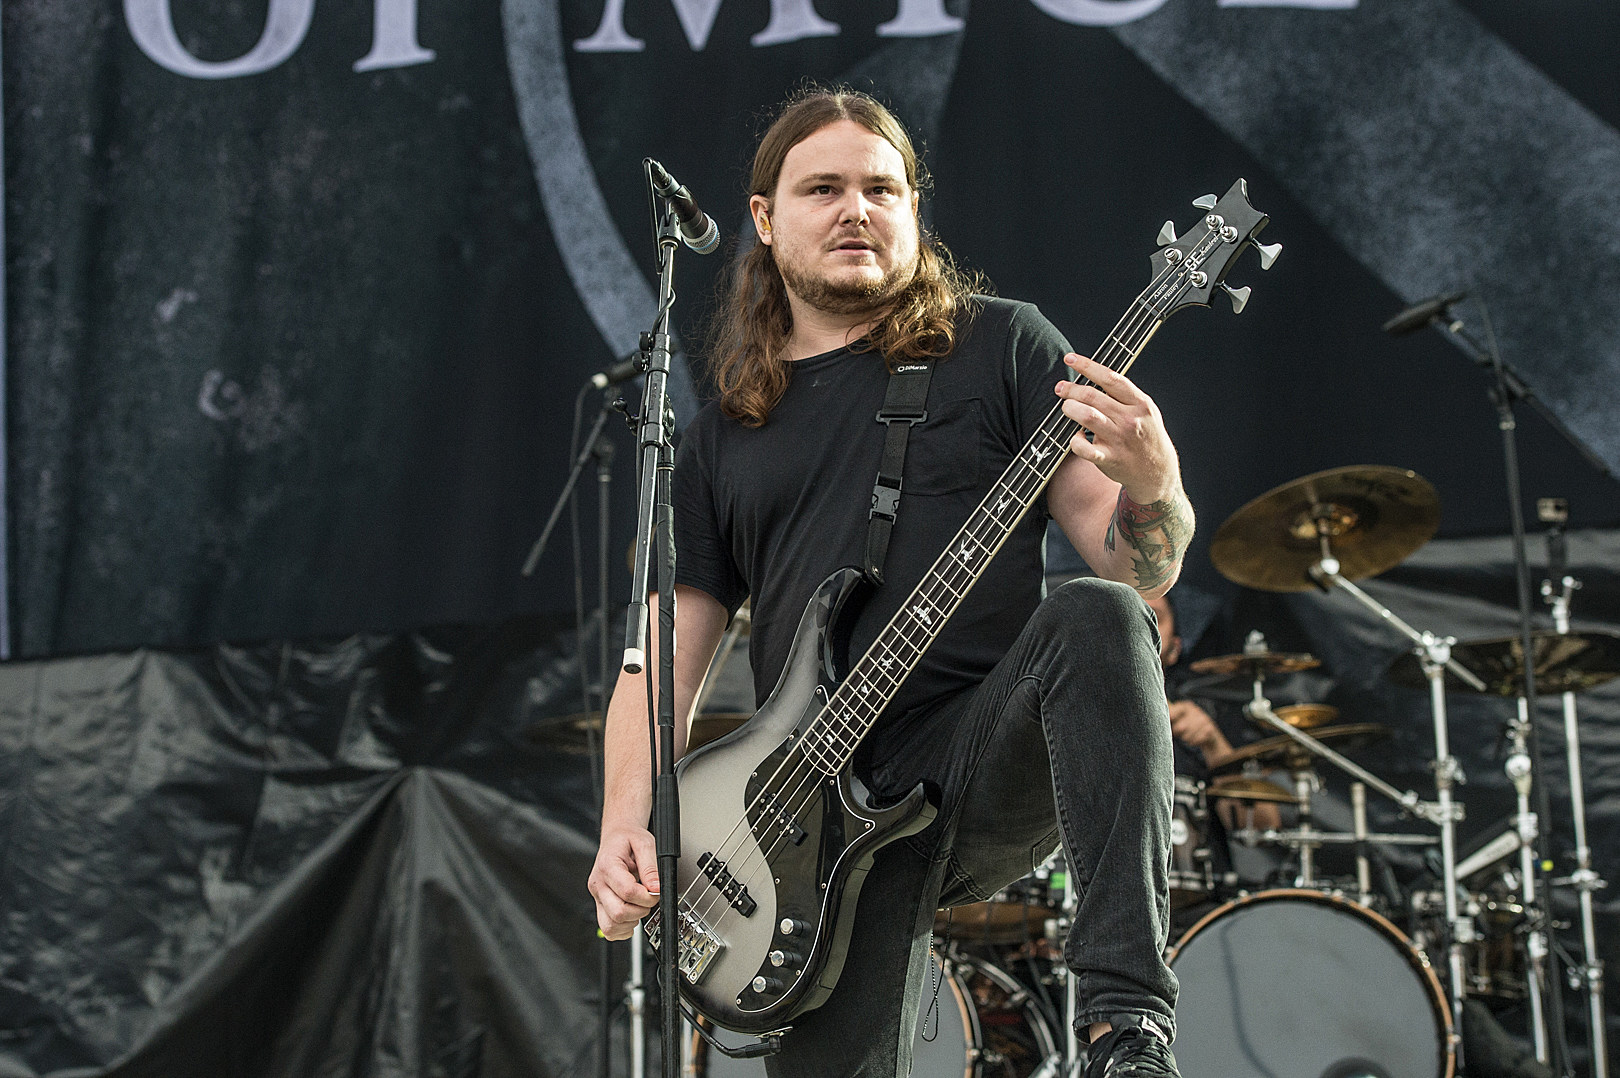 Of Mice & Men's Aaron Pauley Medically Cleared to Return to Touring